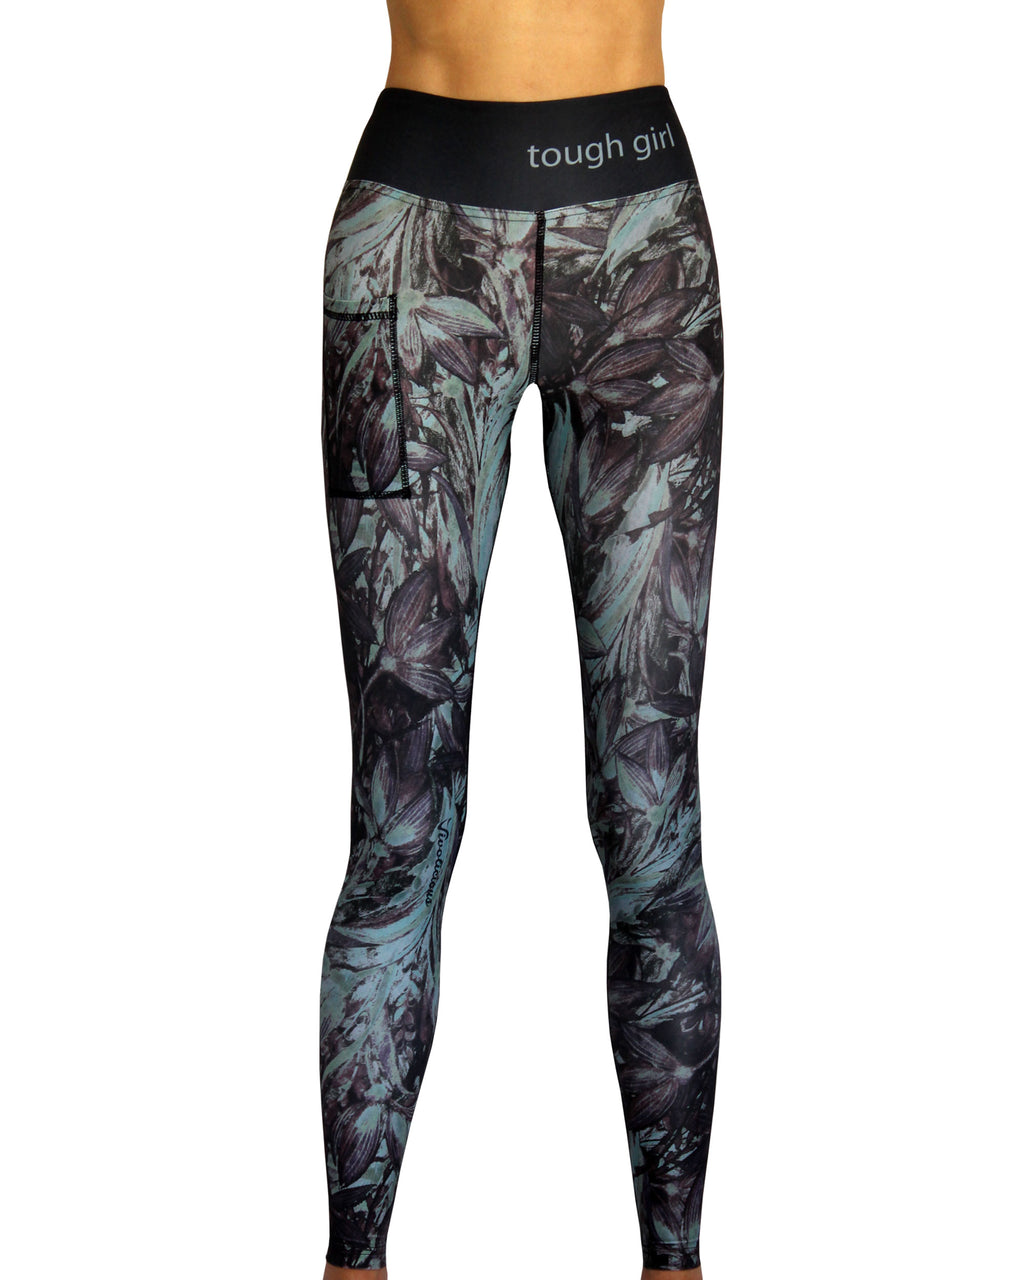 TOUGH GIRL Tech Tights VIVOLICIOUS Active Wear Leggings